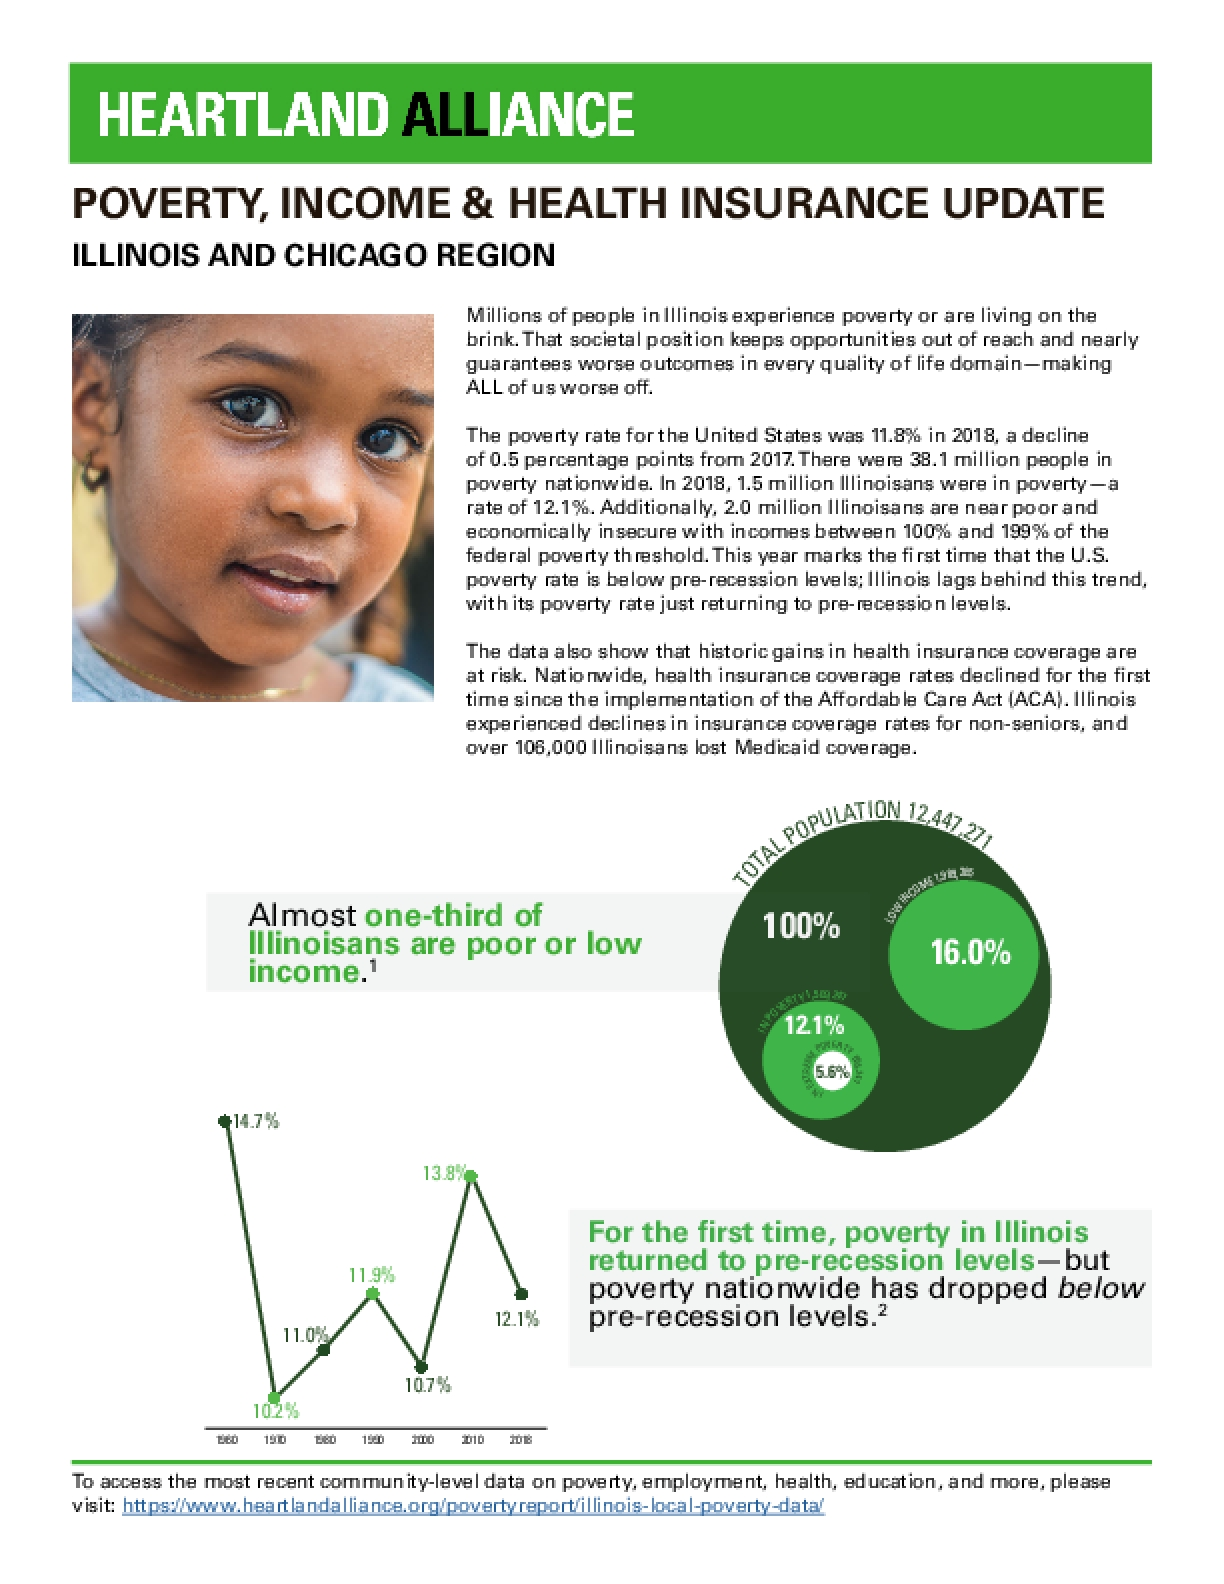 Illinois and Chicago Region: Poverty, Income and Health Insurance